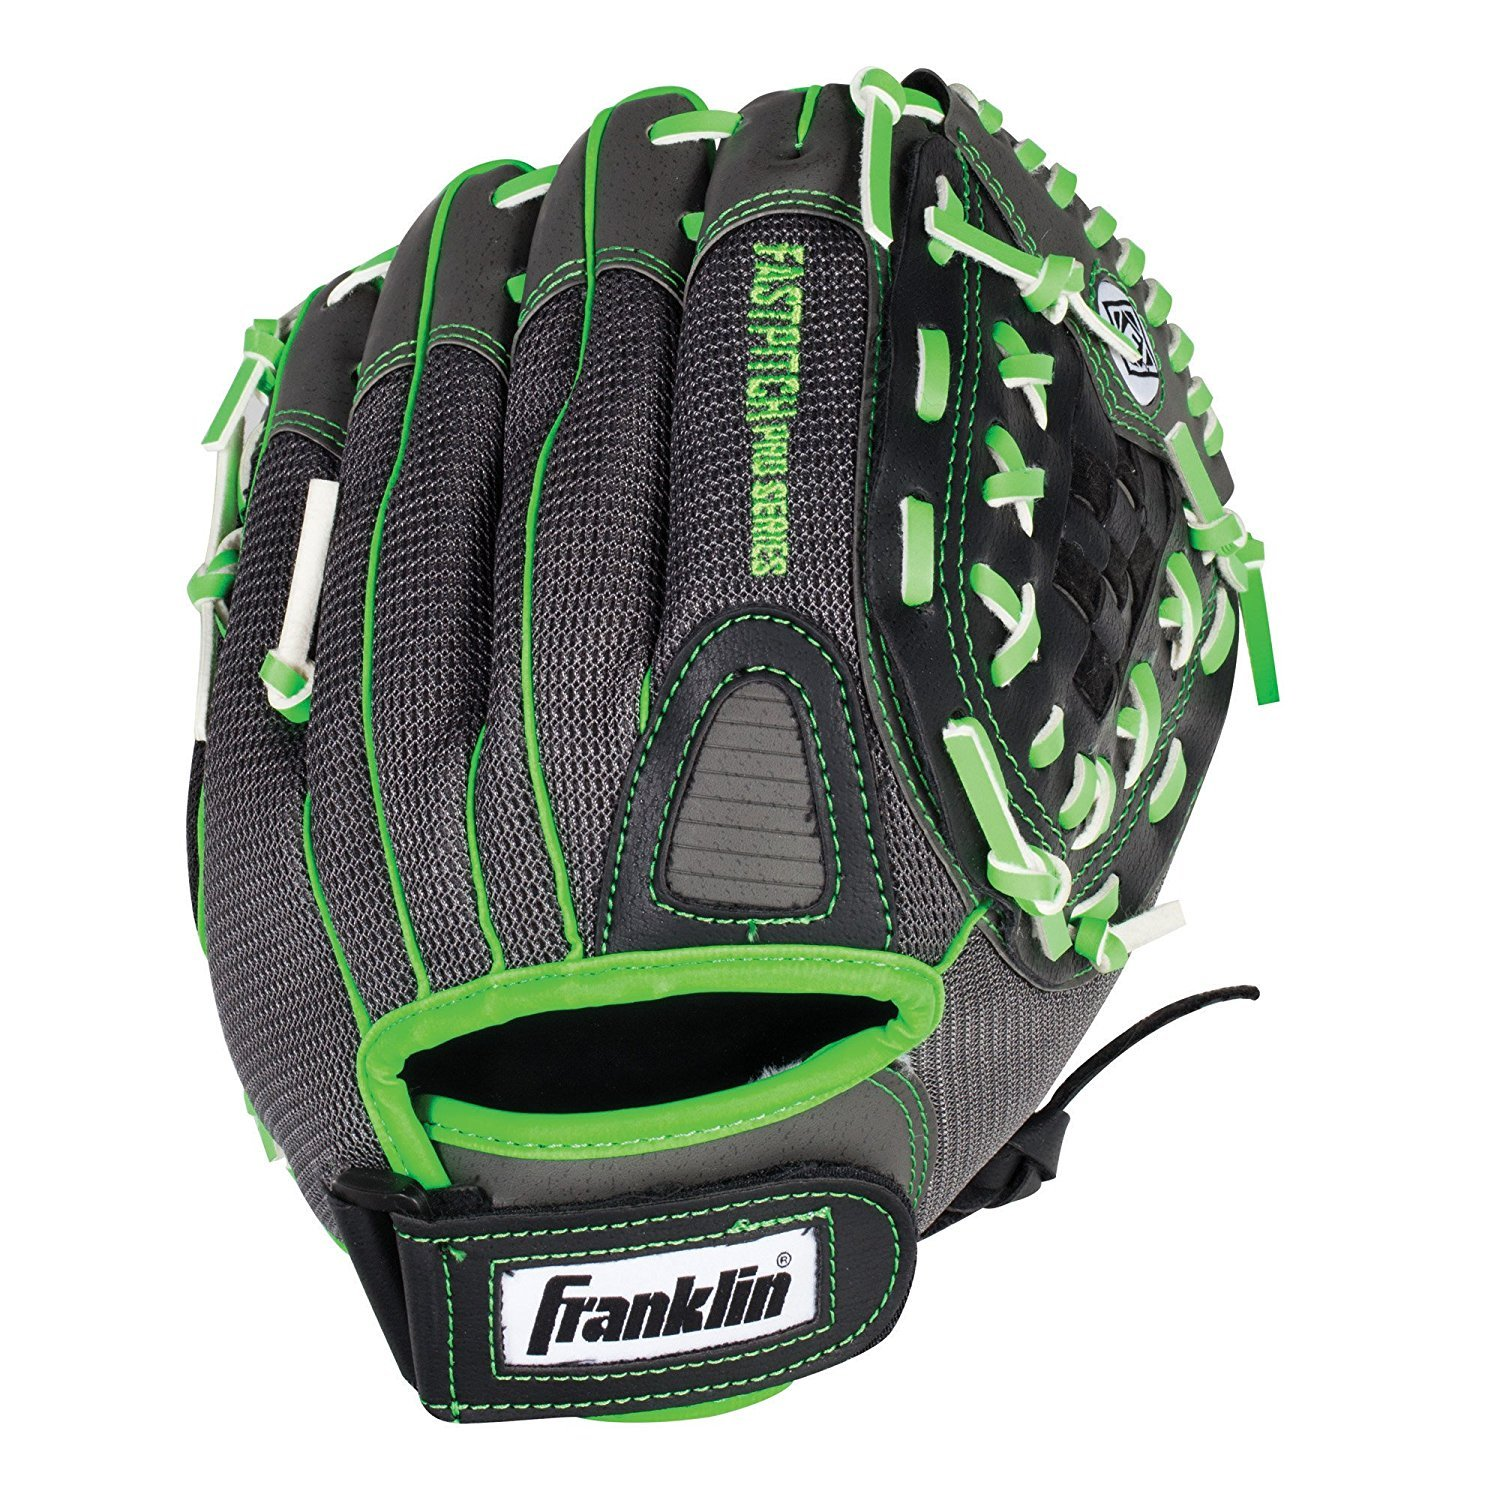 High Quality Windmill Series Lightweight Softball Glove, 11-Inch B07C2TFPHP